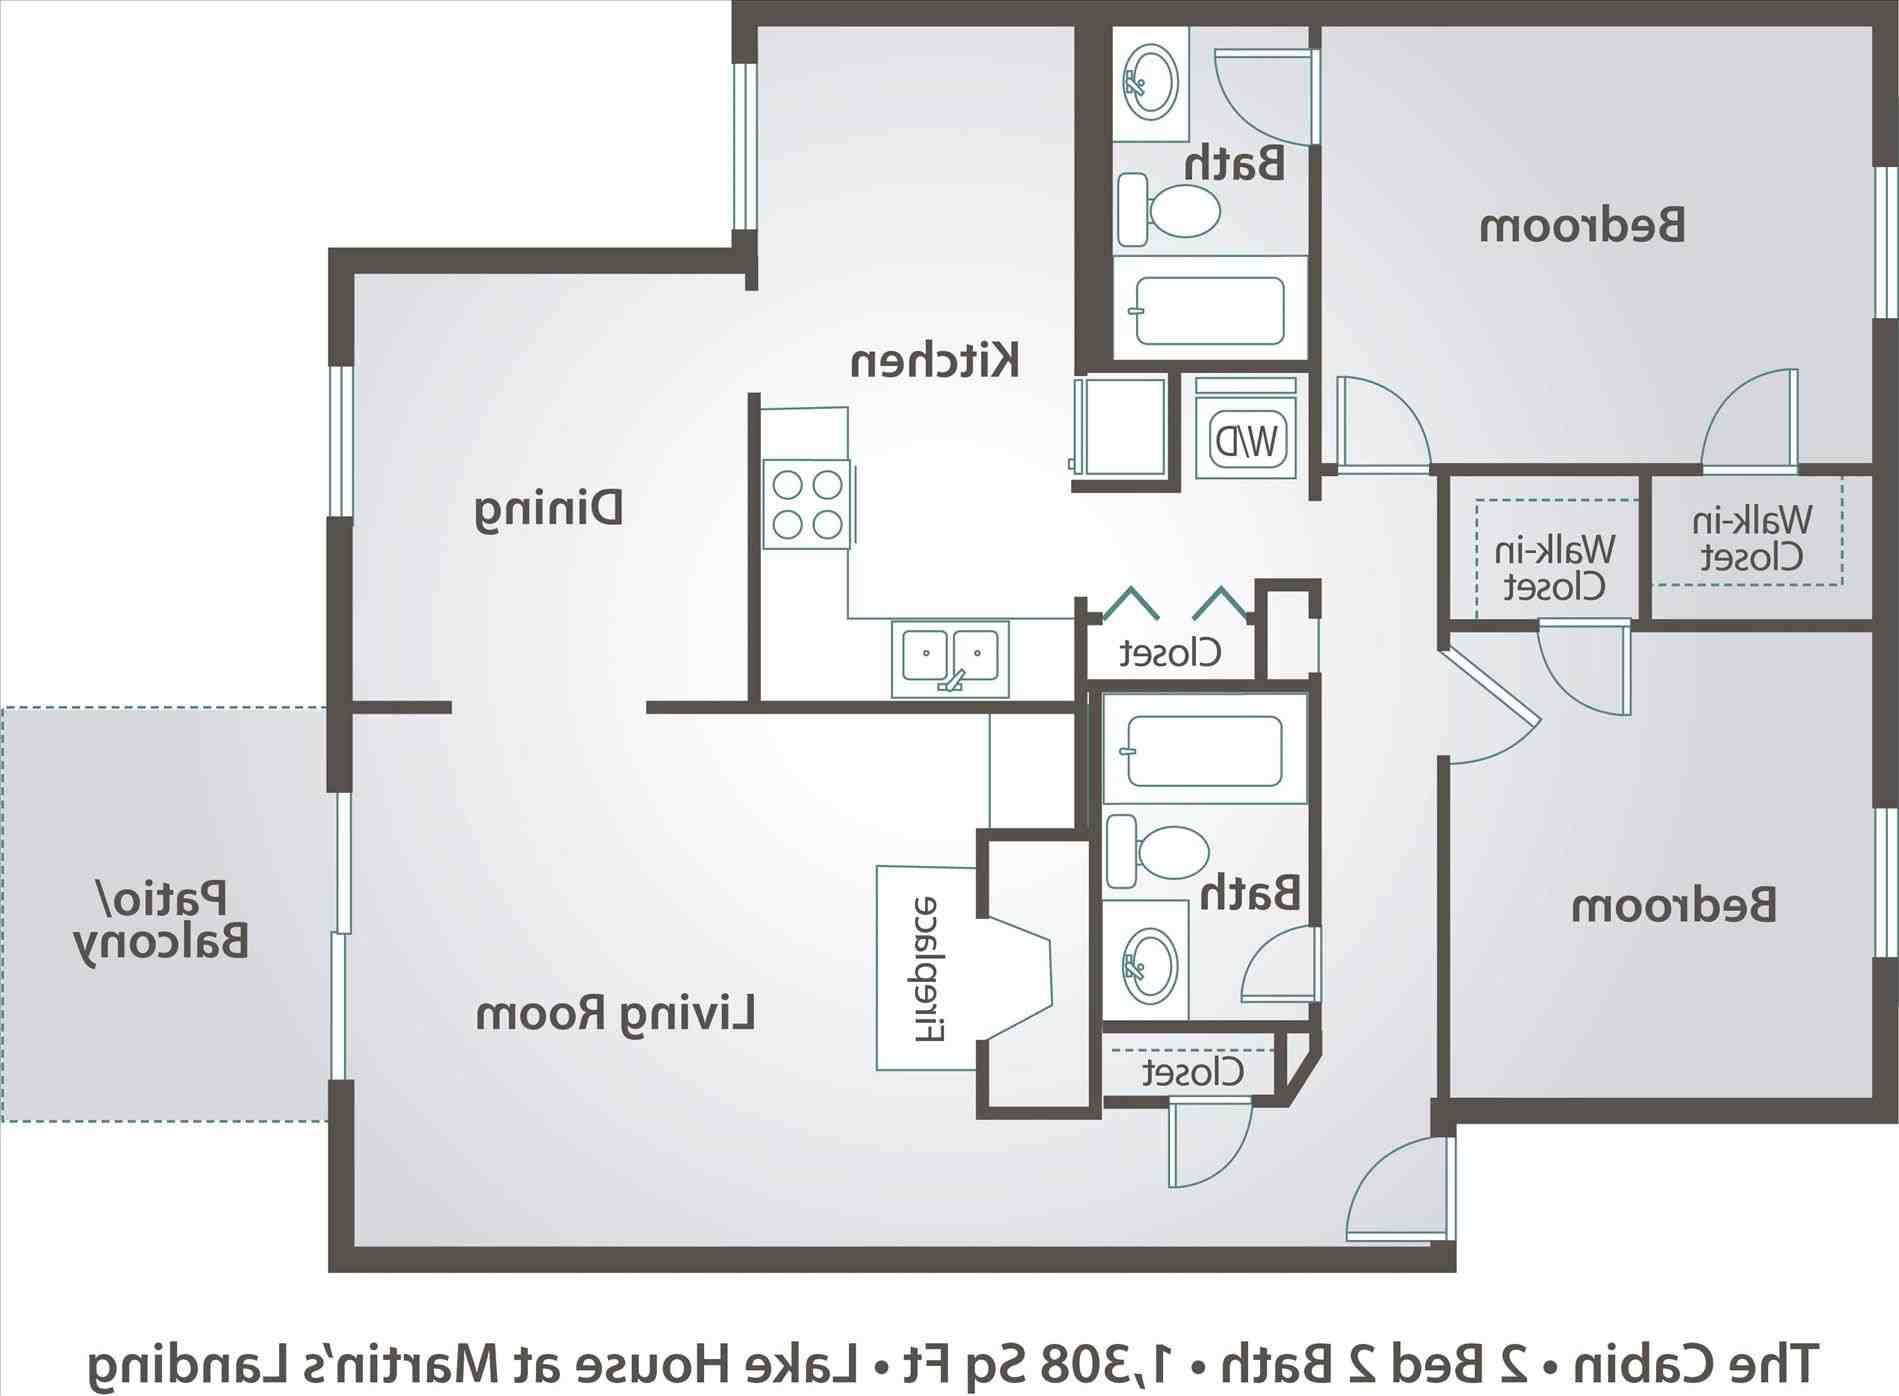 2 Bedroom Apartment Floor Plan D Floor Plans With Adfcfeb Bedroom House Collection In 2 Bedroom Apartment Floor Plan Apartment Floor Plan 2 Bedroom Apartment